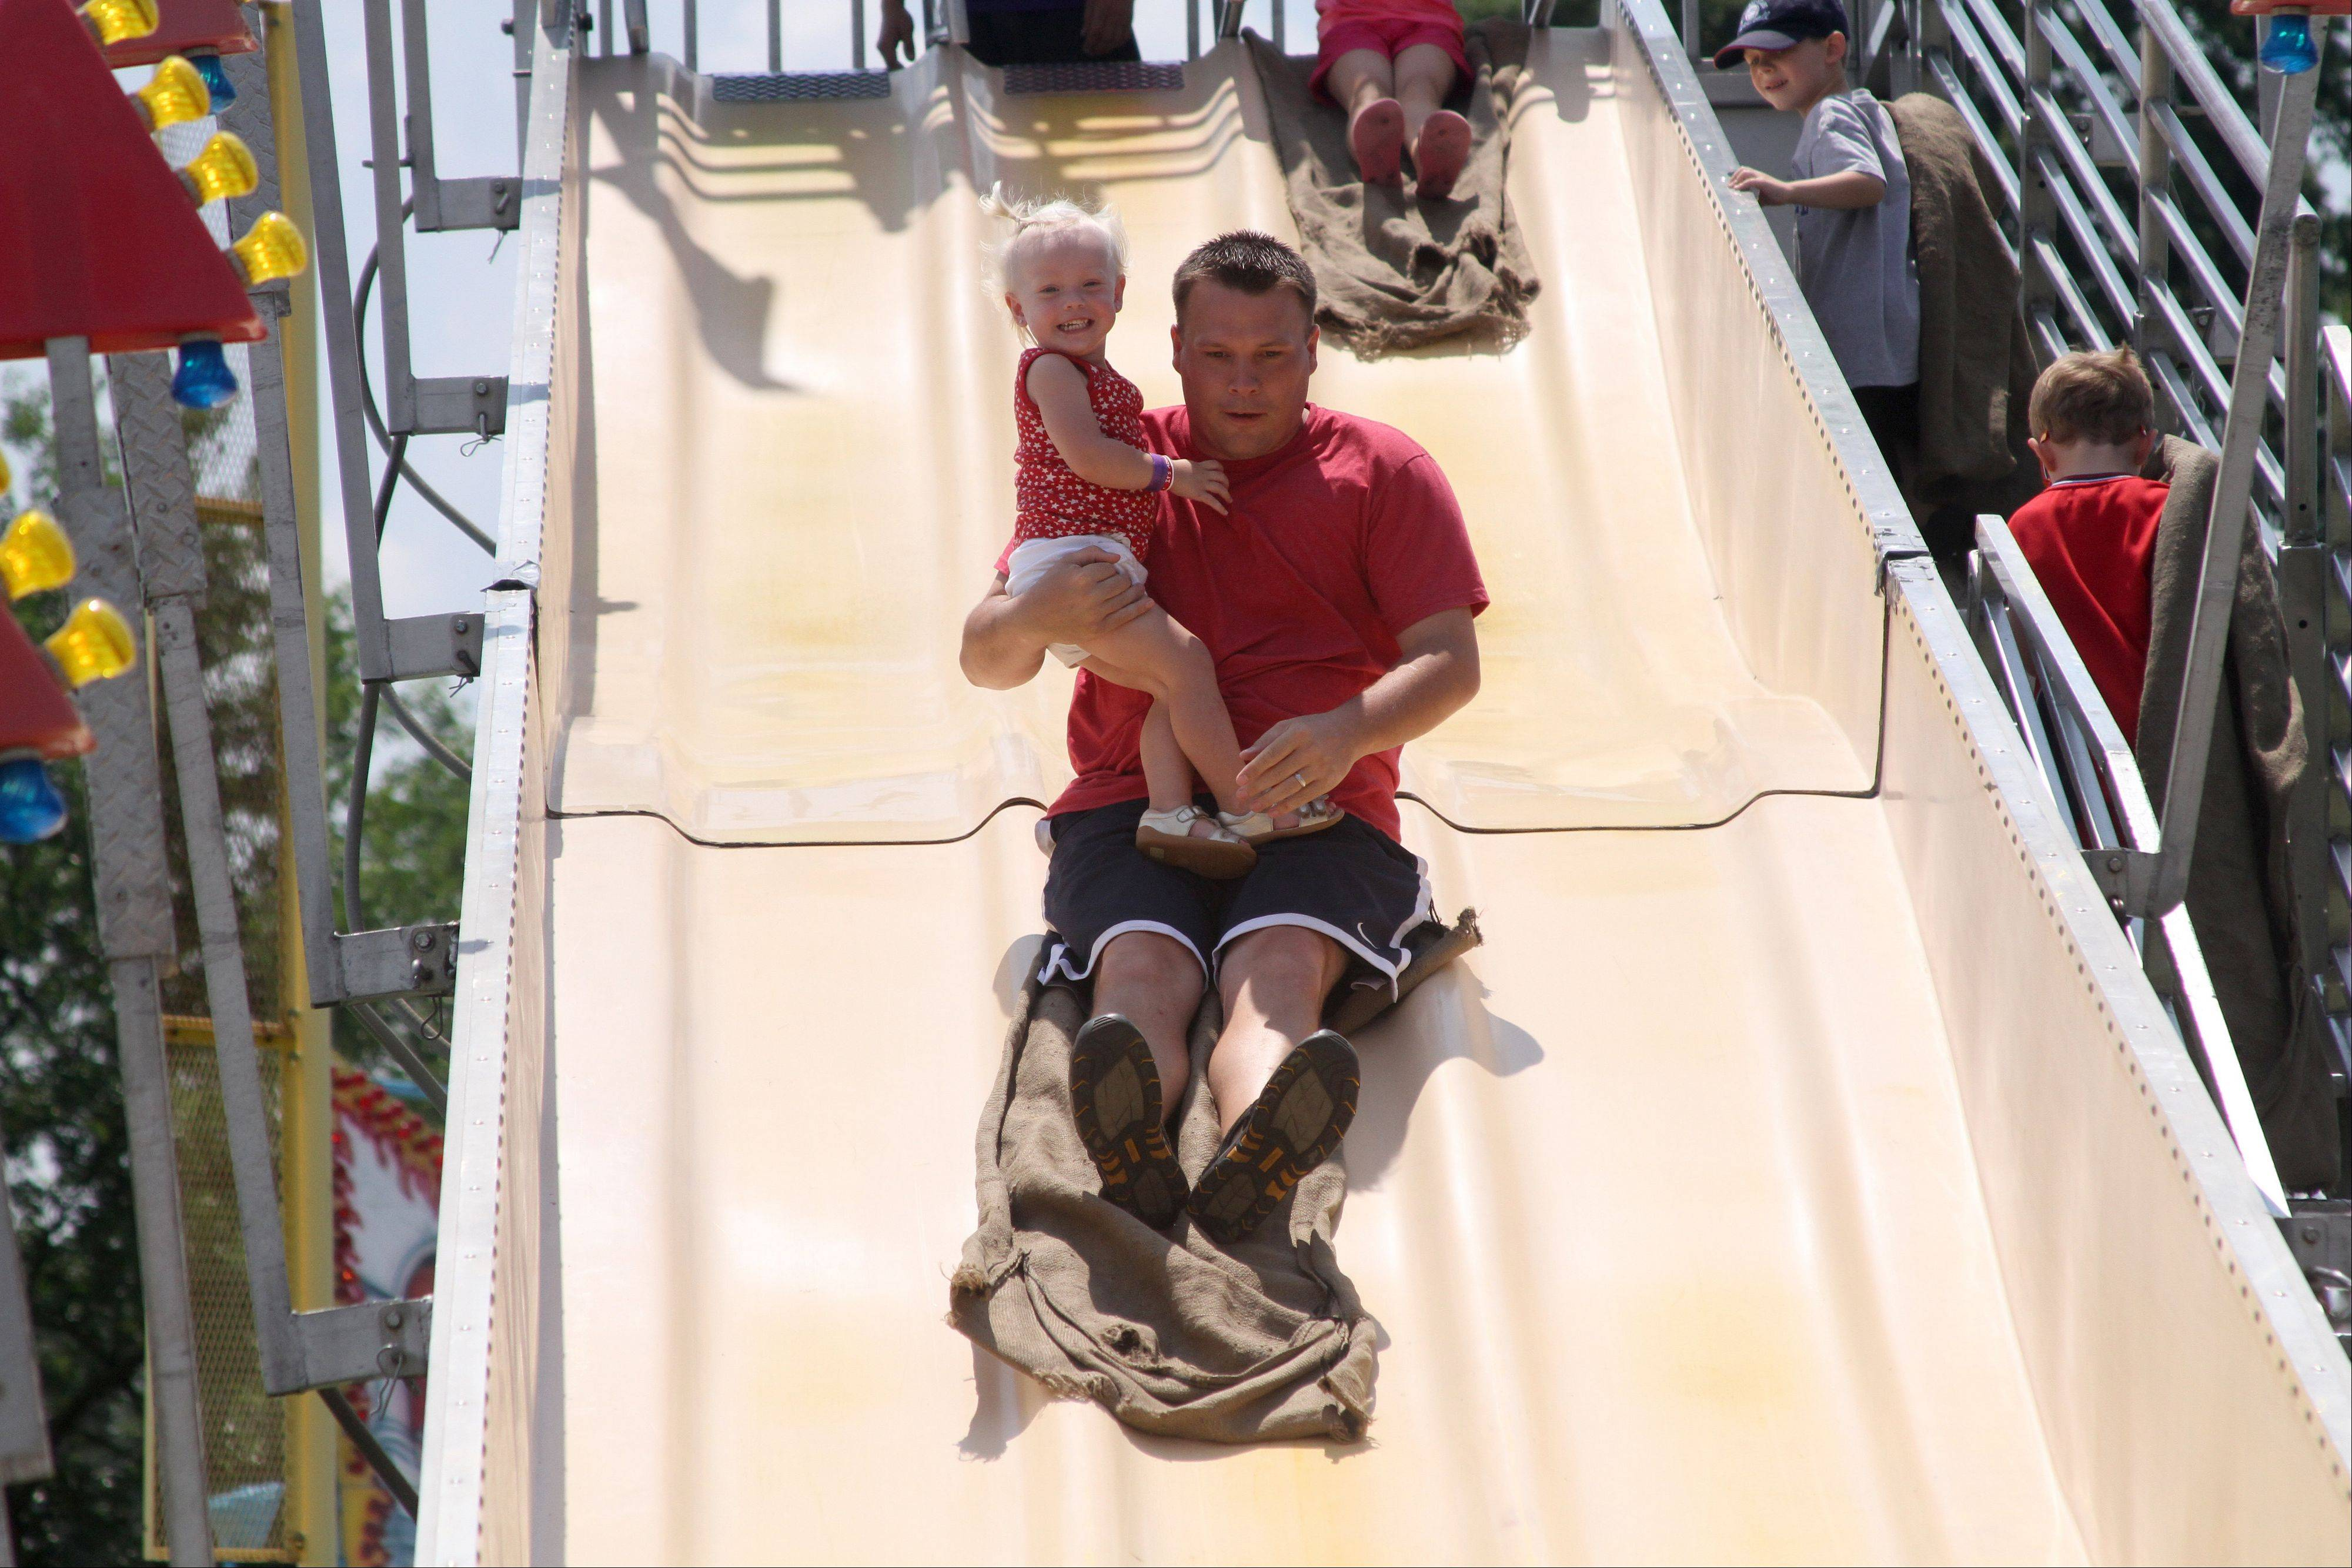 Brian Clark of Naperville holds his 2-year-old daughter Kailyn as they go down the Fun Slide at the Naperville Exchange Club's 26th annual Ribfest on Friday.